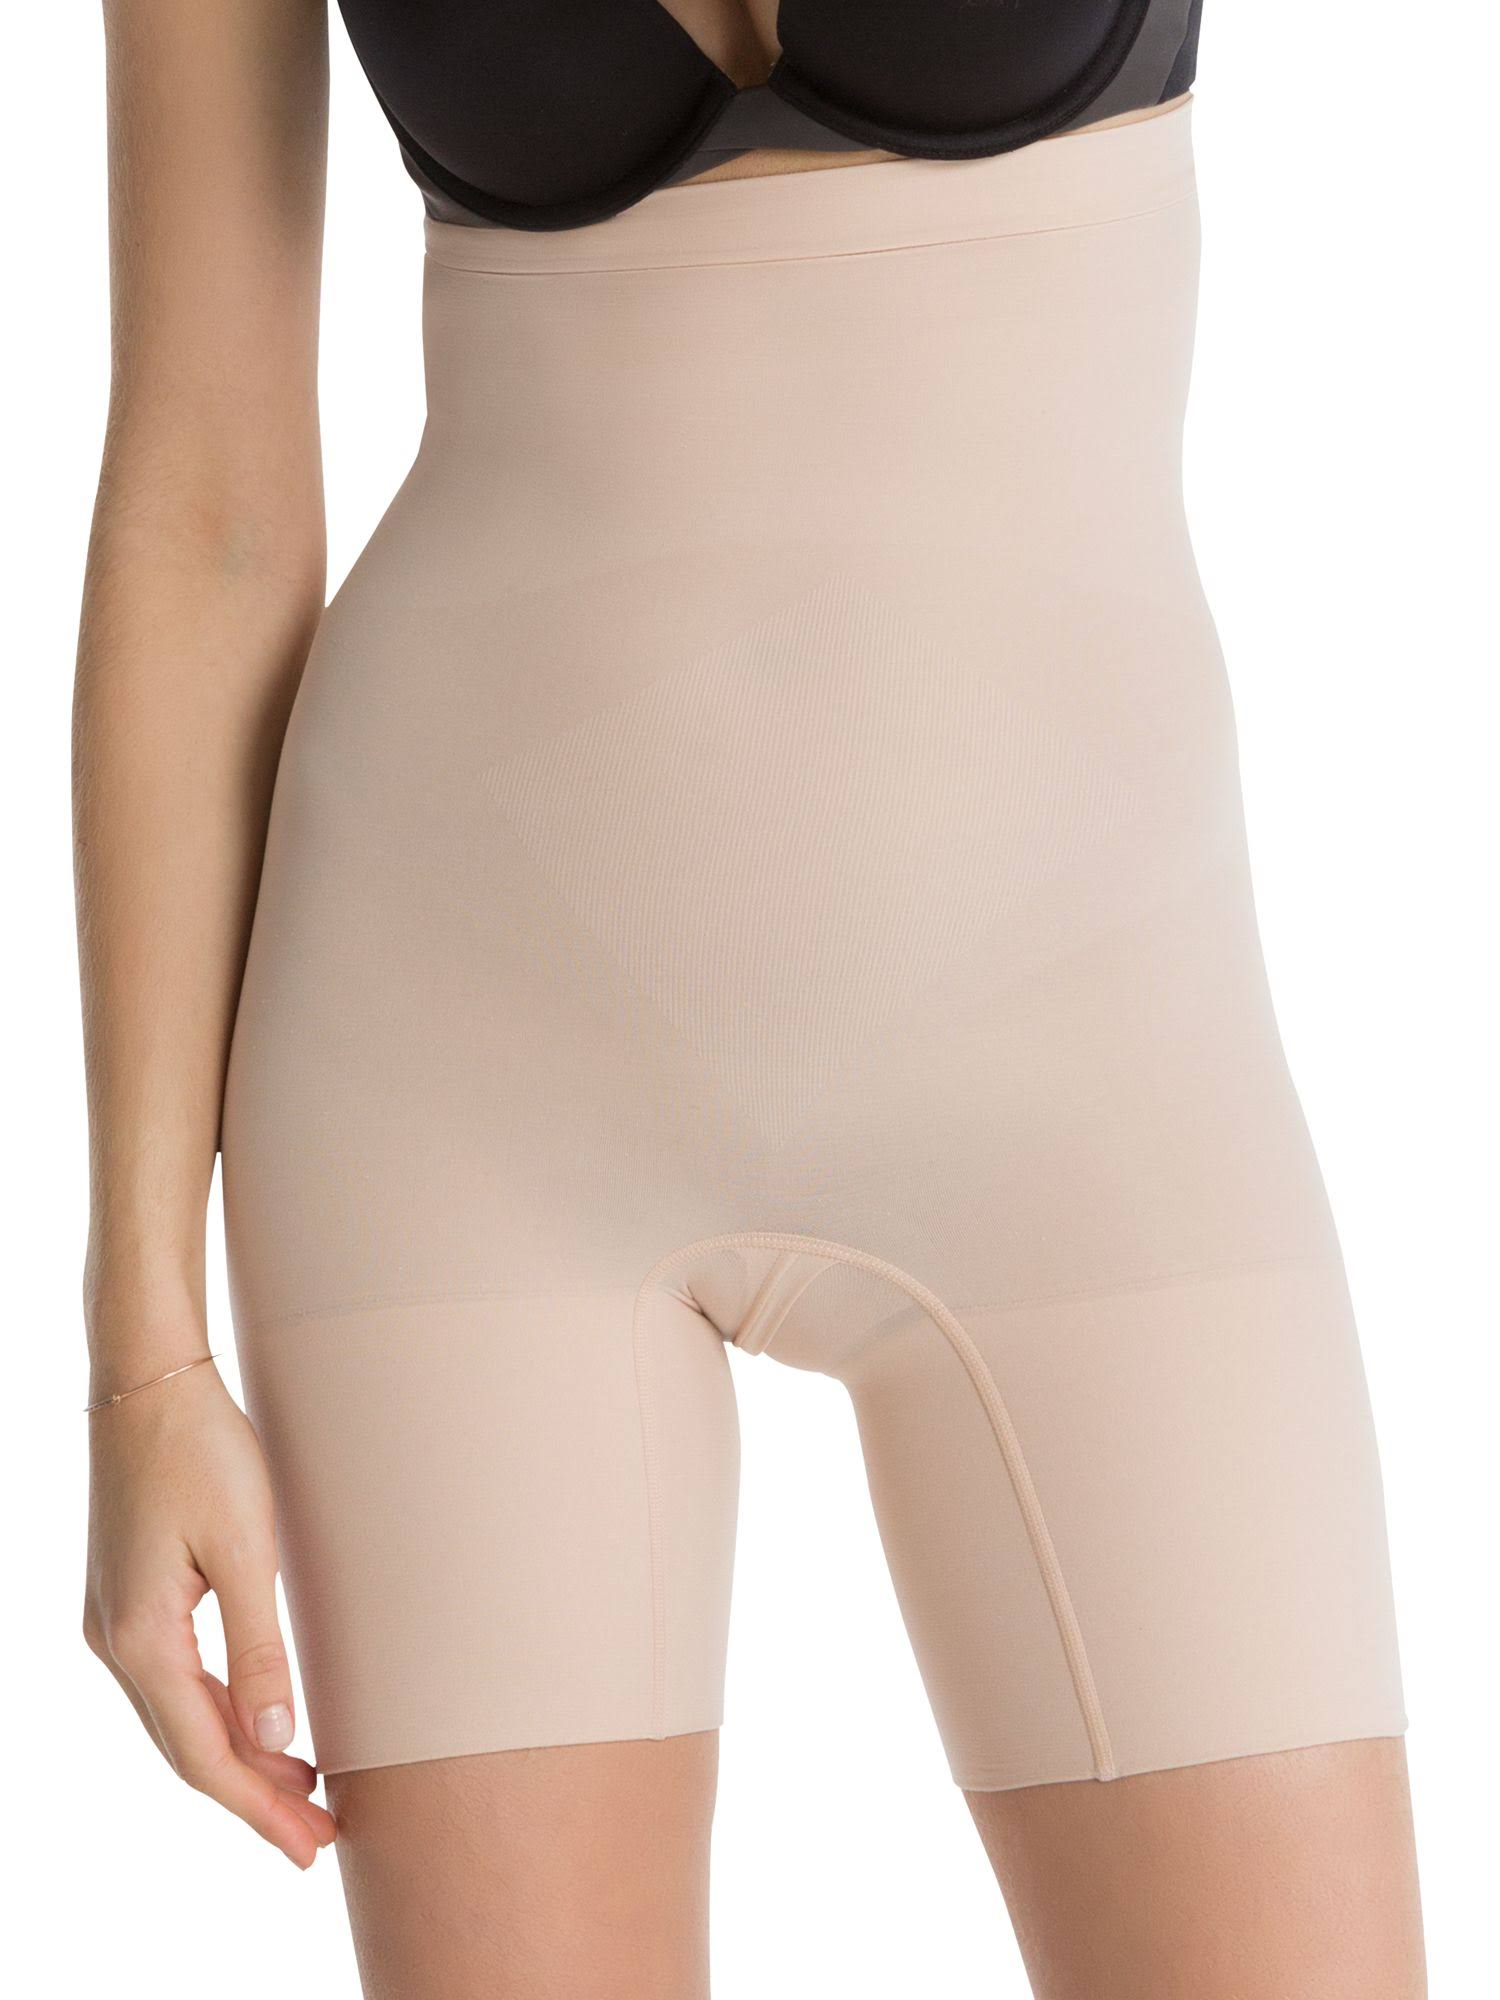 Spanx Higher Power Shorty High Waisted Shaper Short - 2745 Soft Nude, XLarge